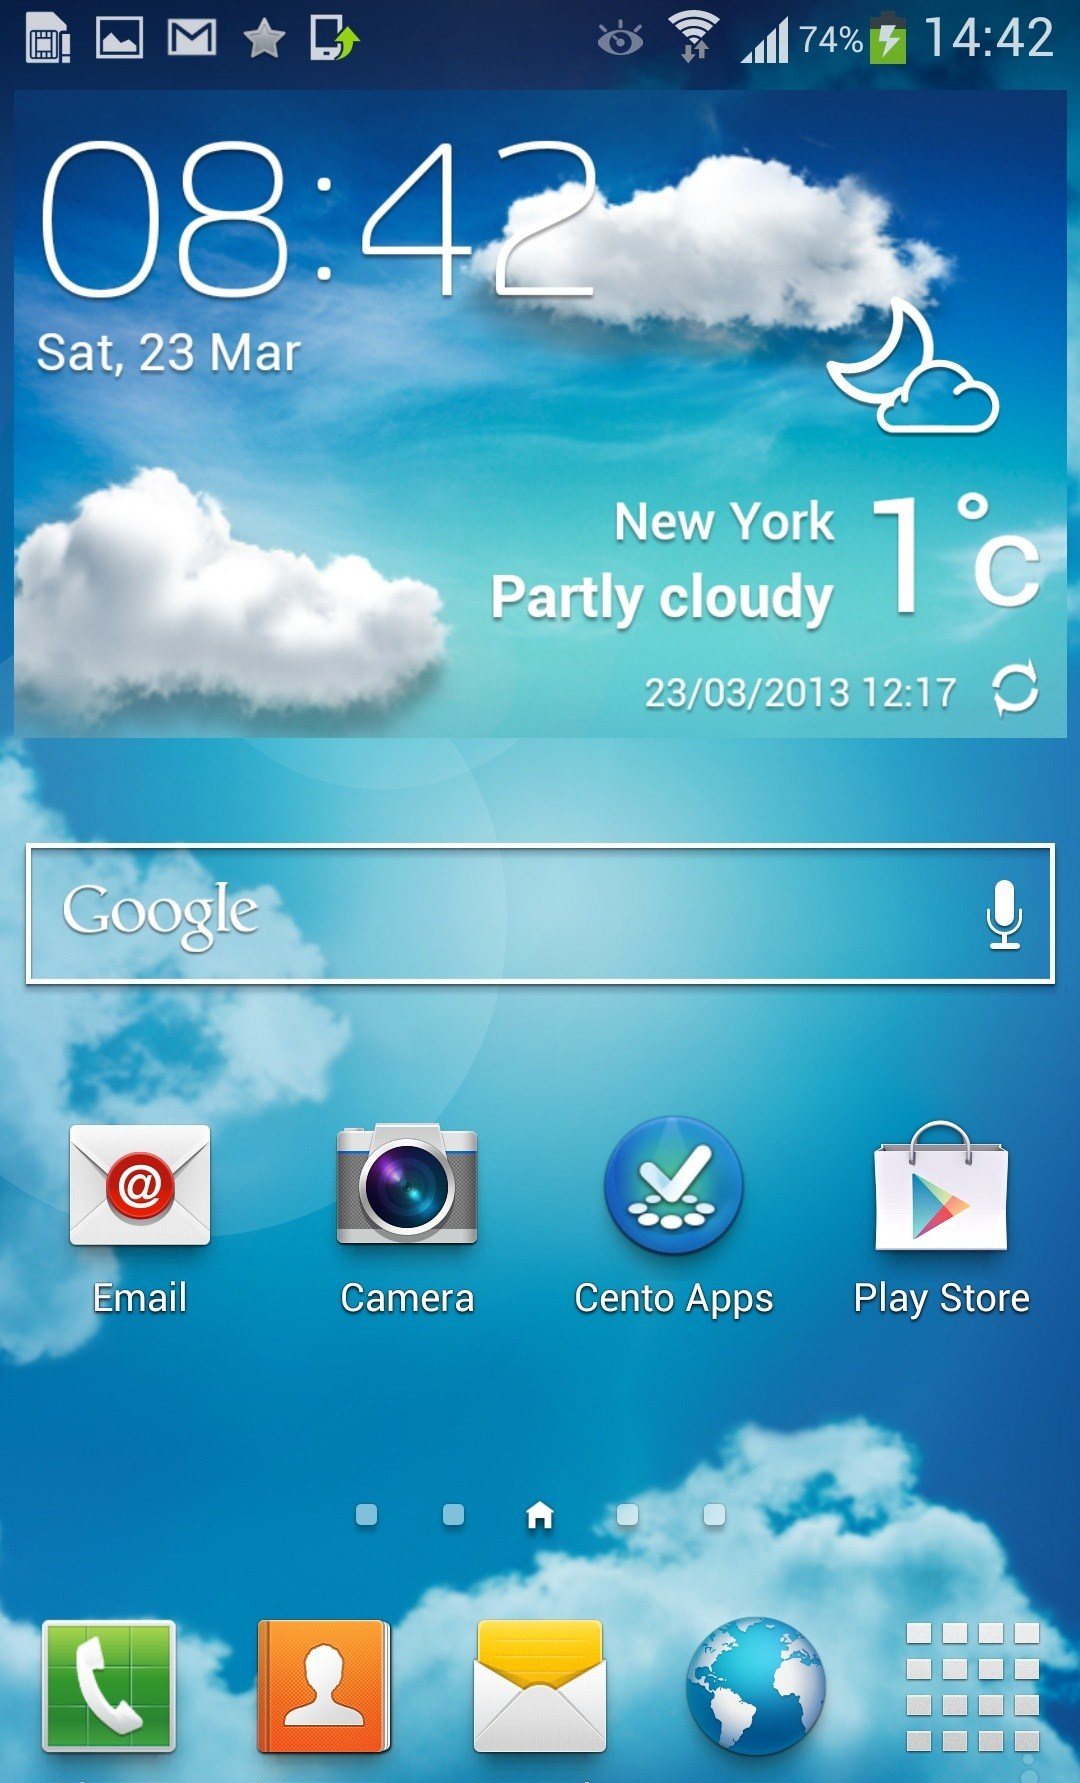 samsung-galaxy-s4-review-33-ui.jpg